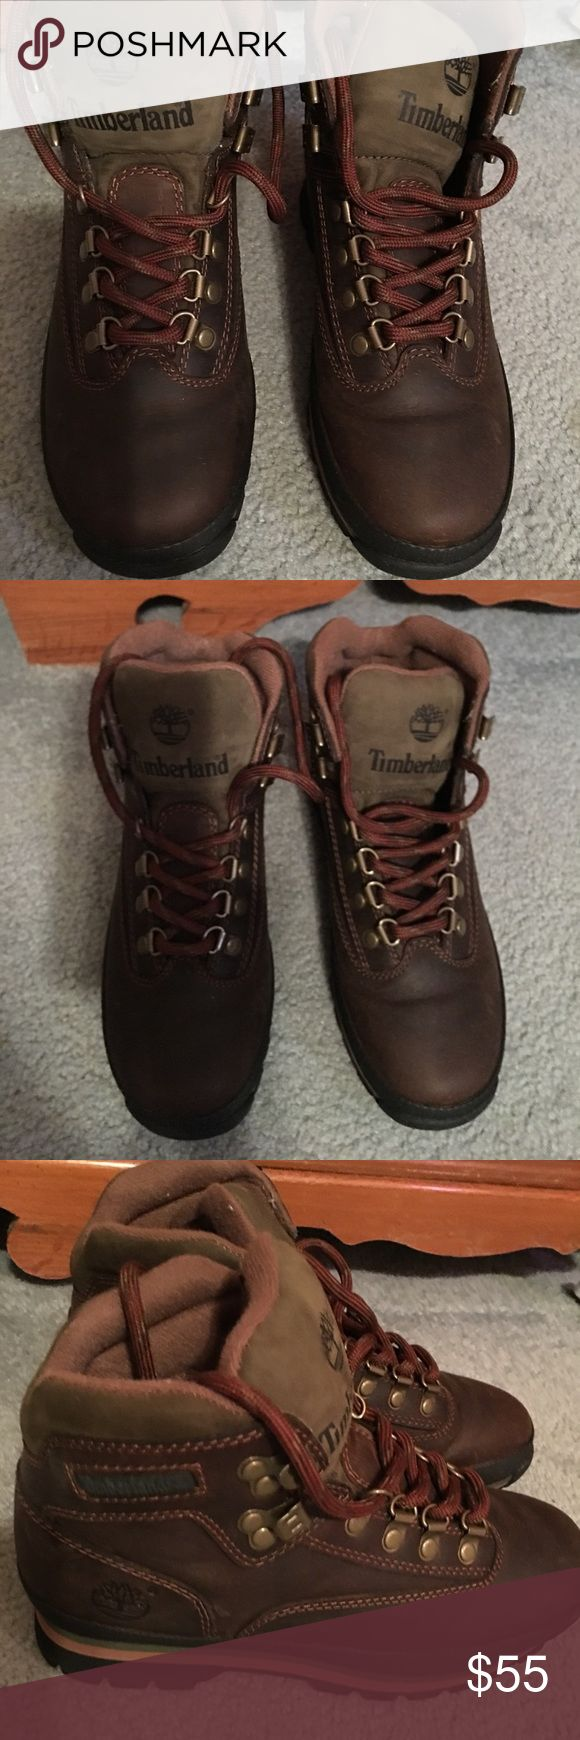 Timberland hiking boots timberland hiking boots leather great condition Timberland Shoes Ankle Boots & Booties